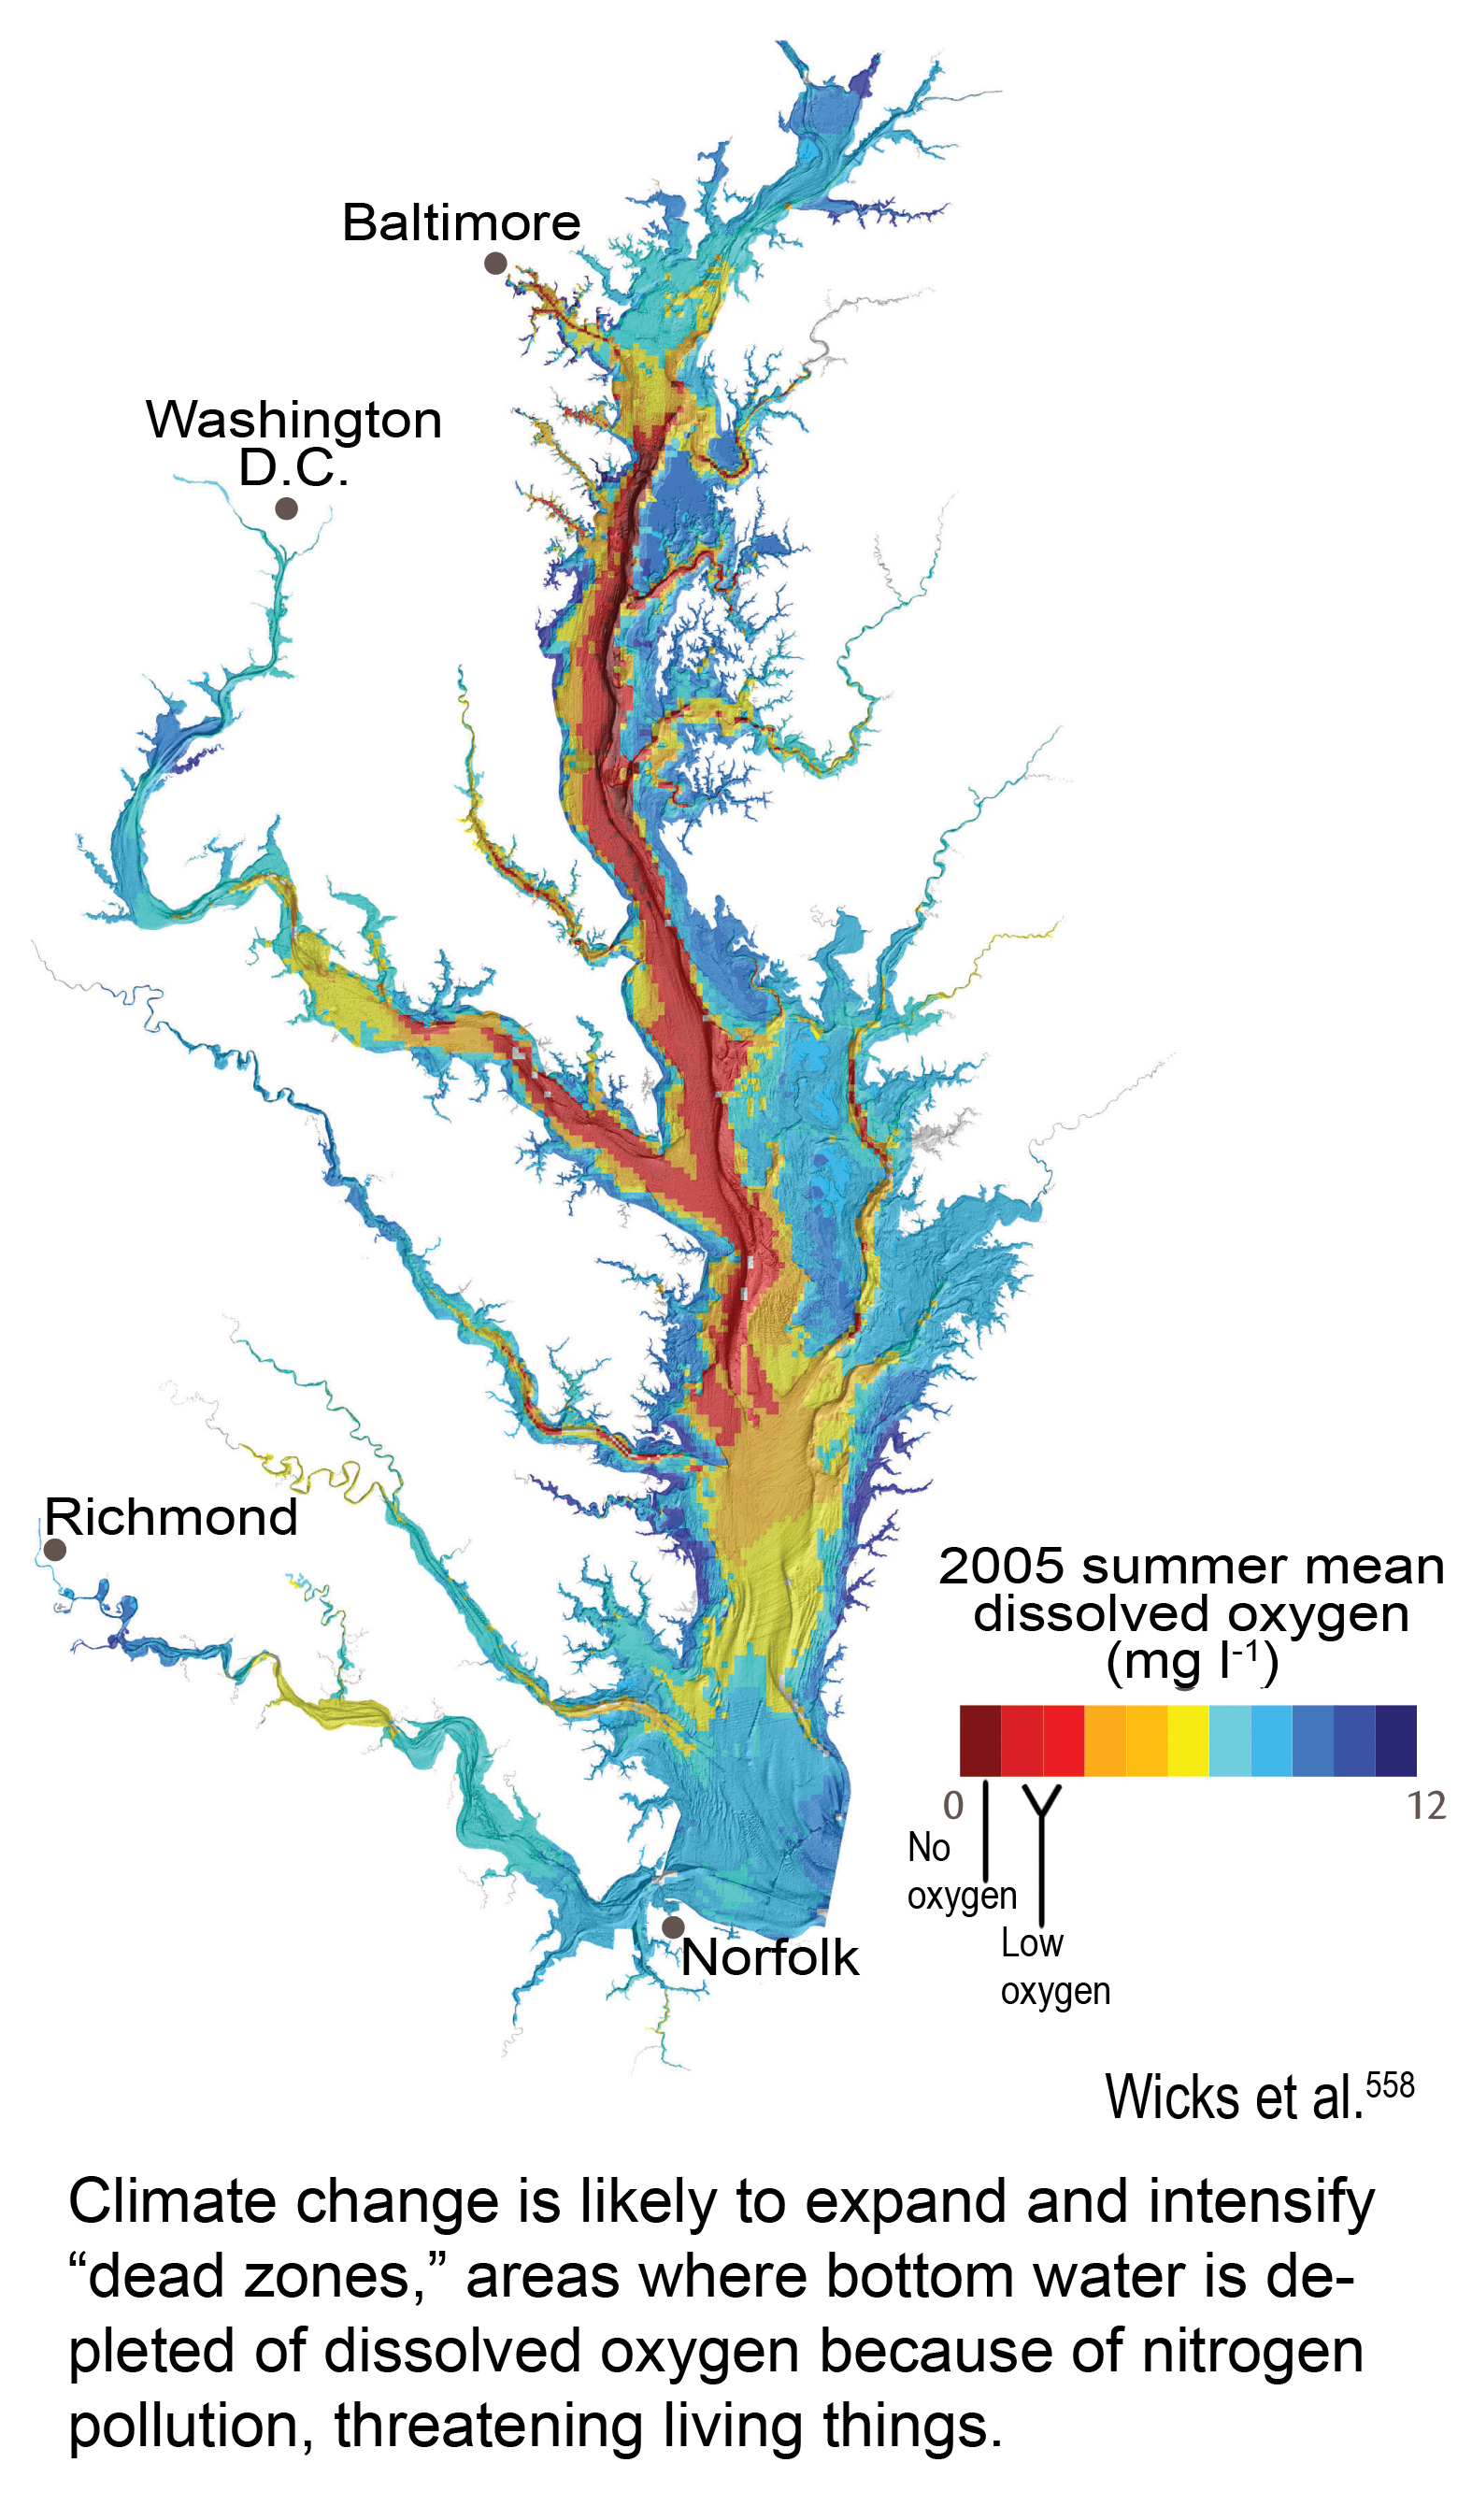 Dead Zones in the Chesapeake Bay Global Climate Change Impacts in